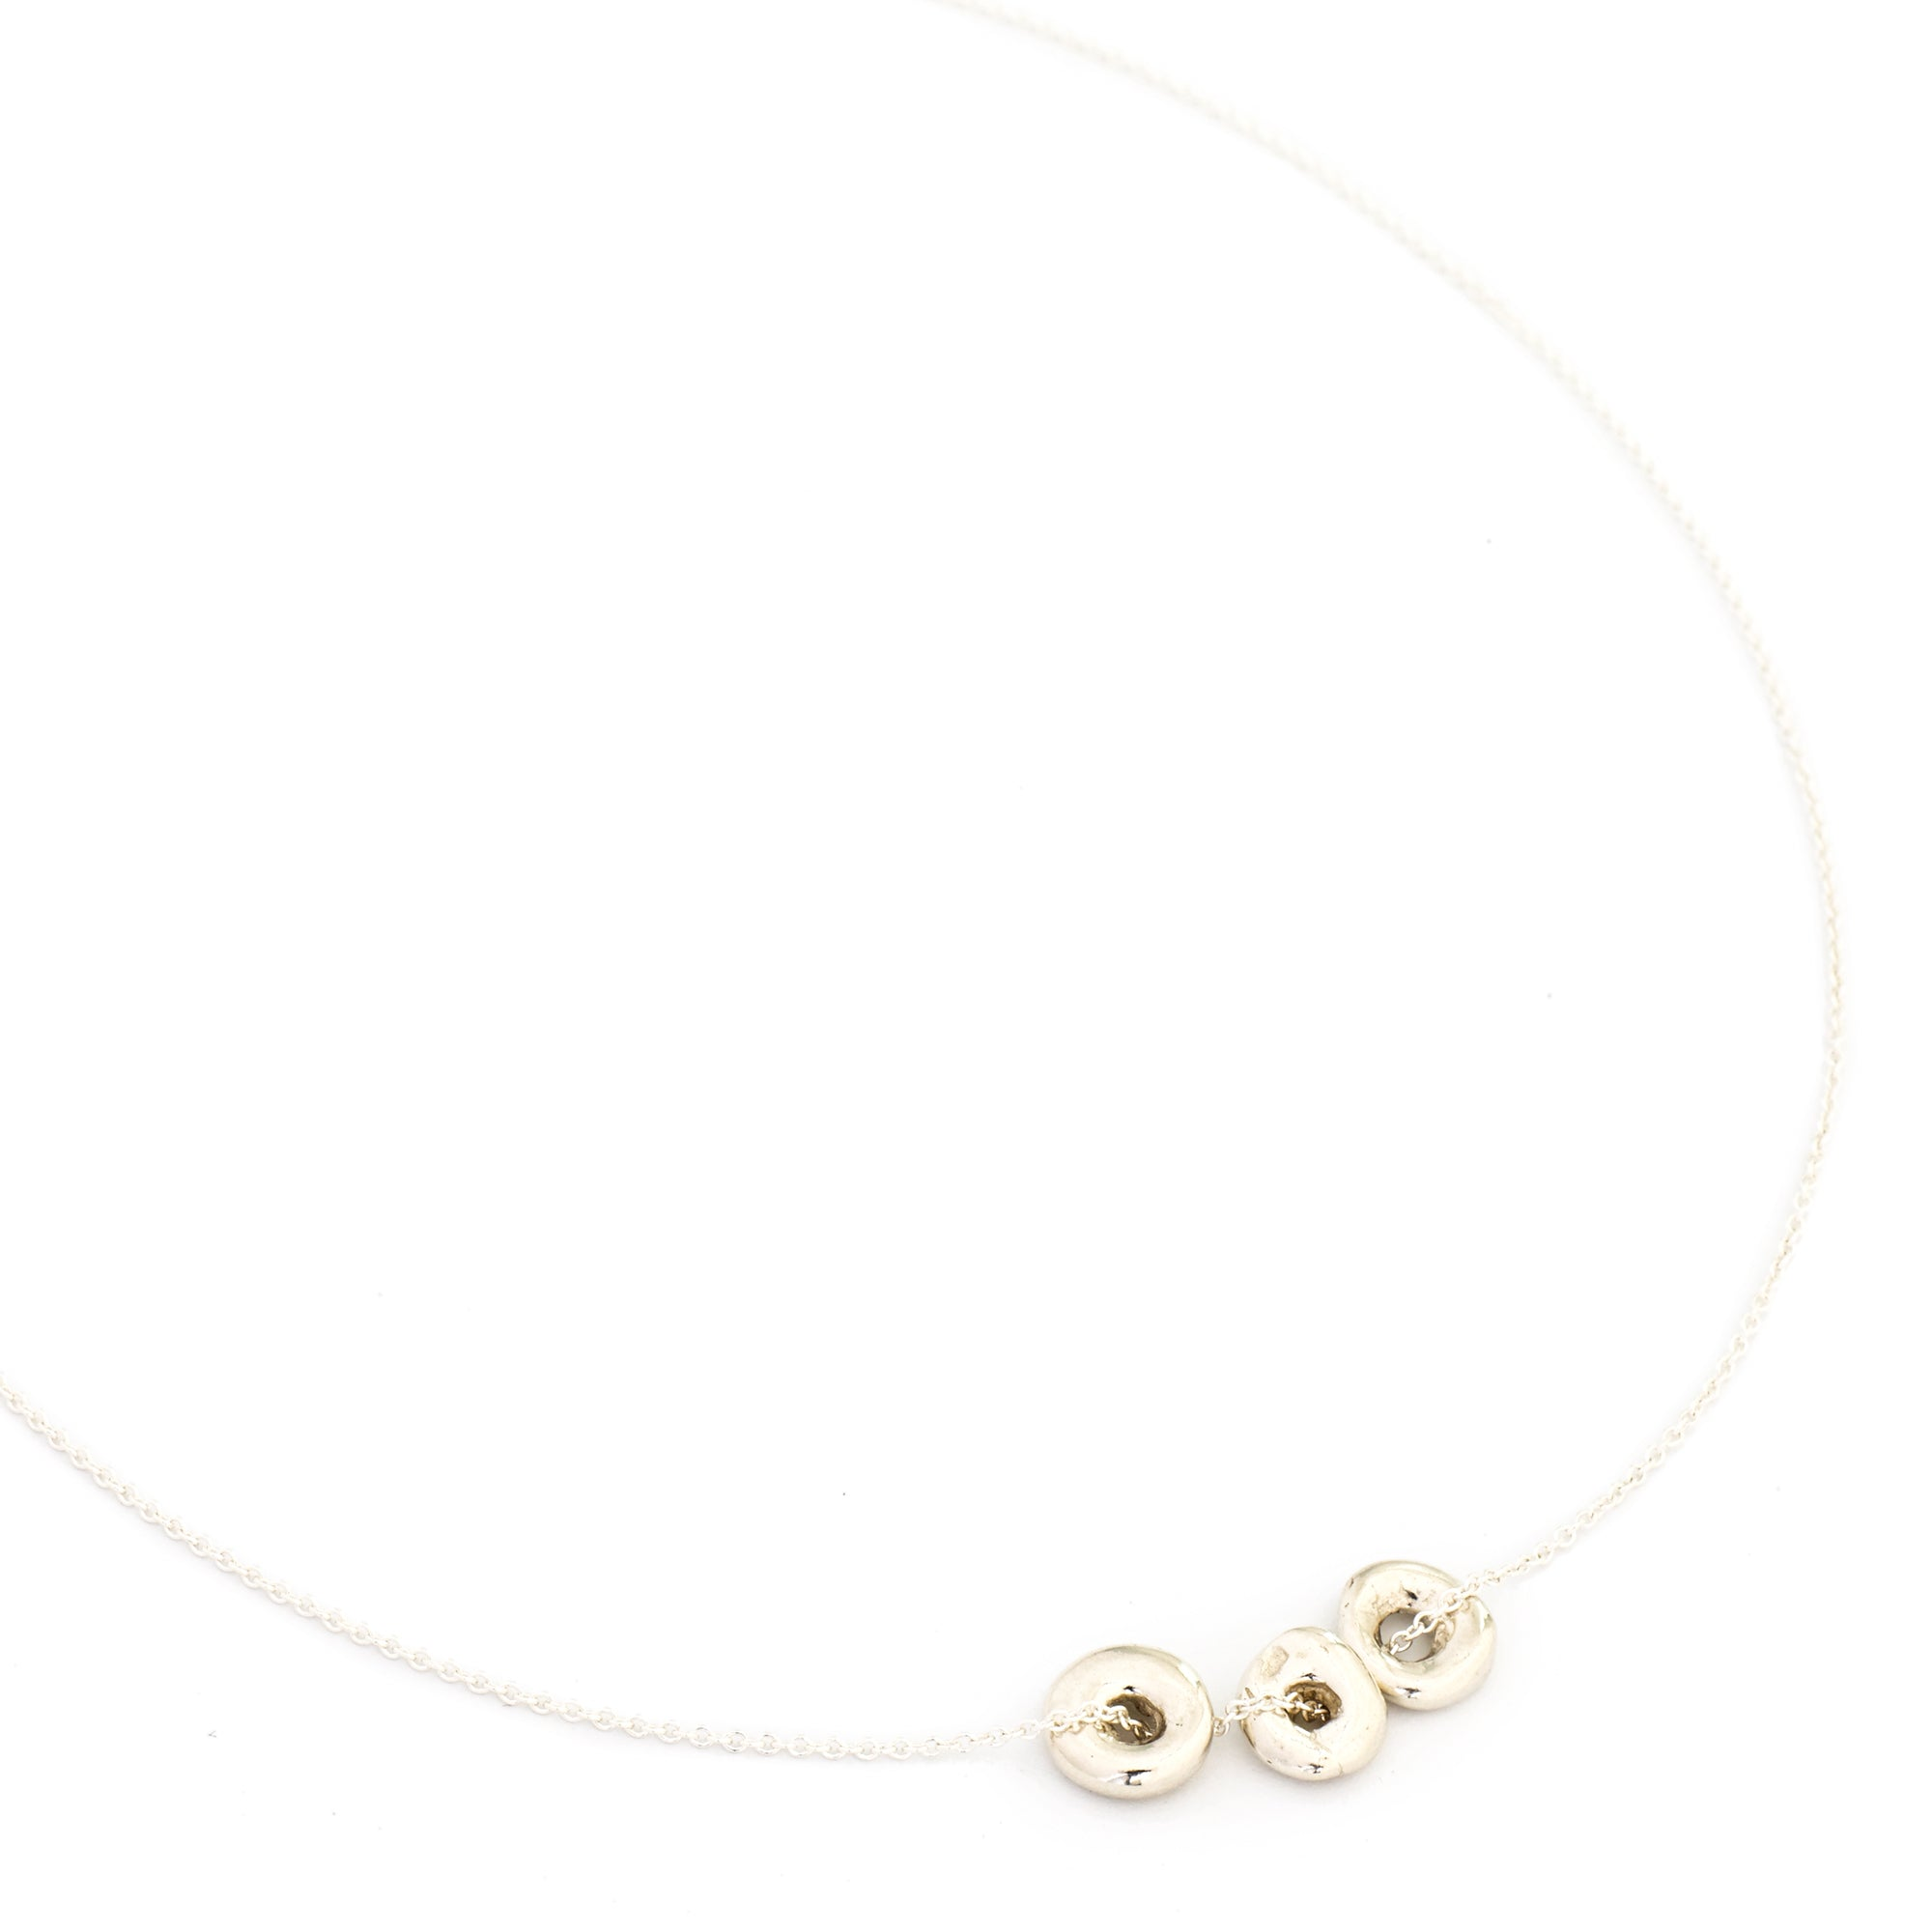 Three Babies Necklace - Johanna Brierley Jewellery Design